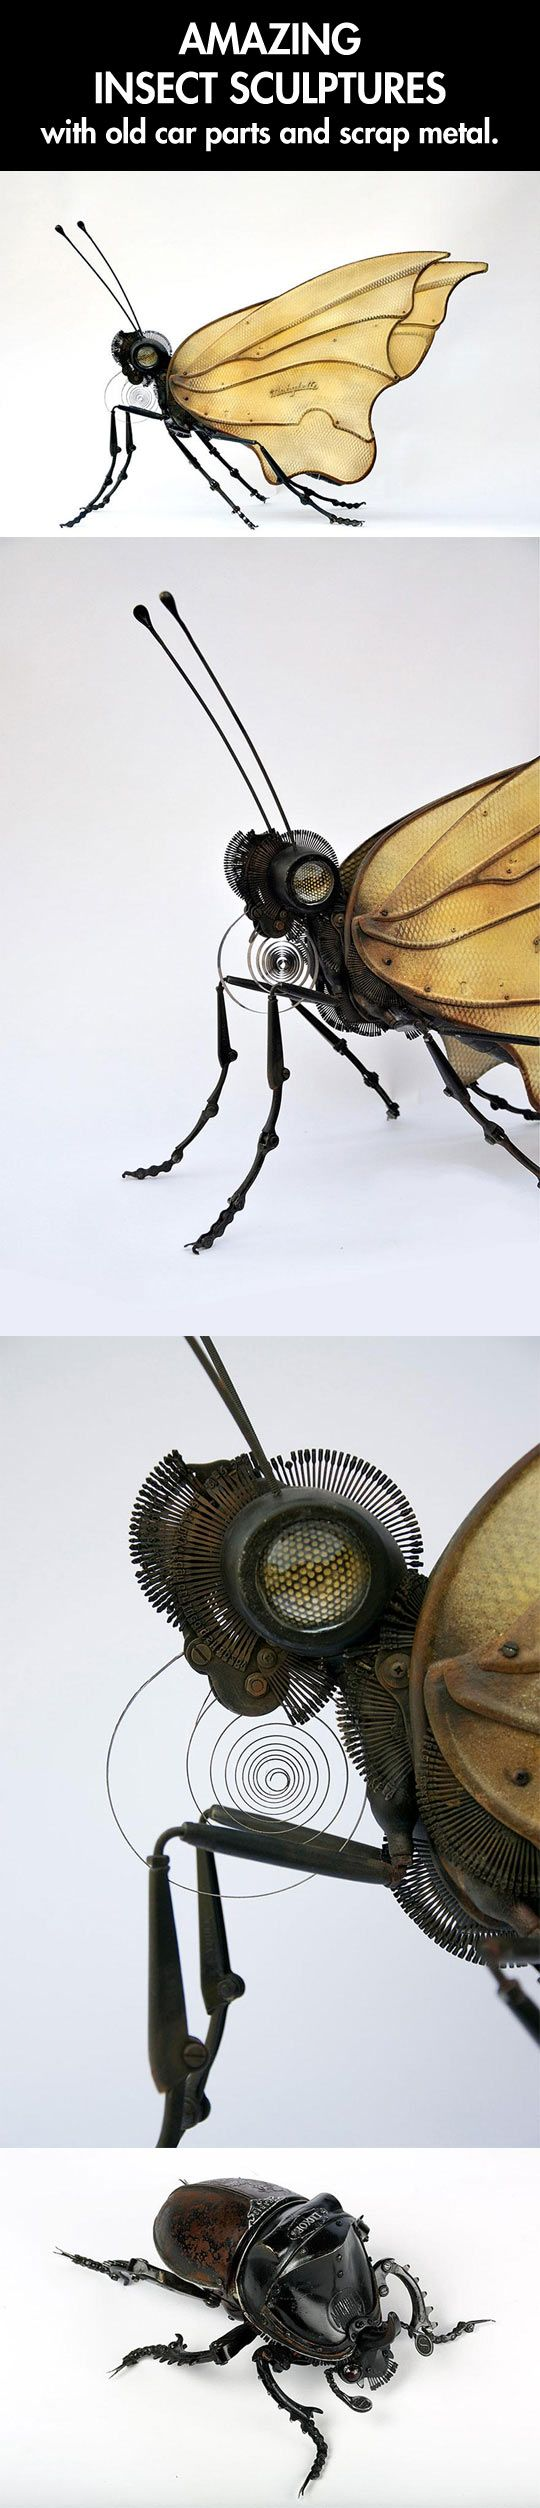 Insect sculptures, amazing!